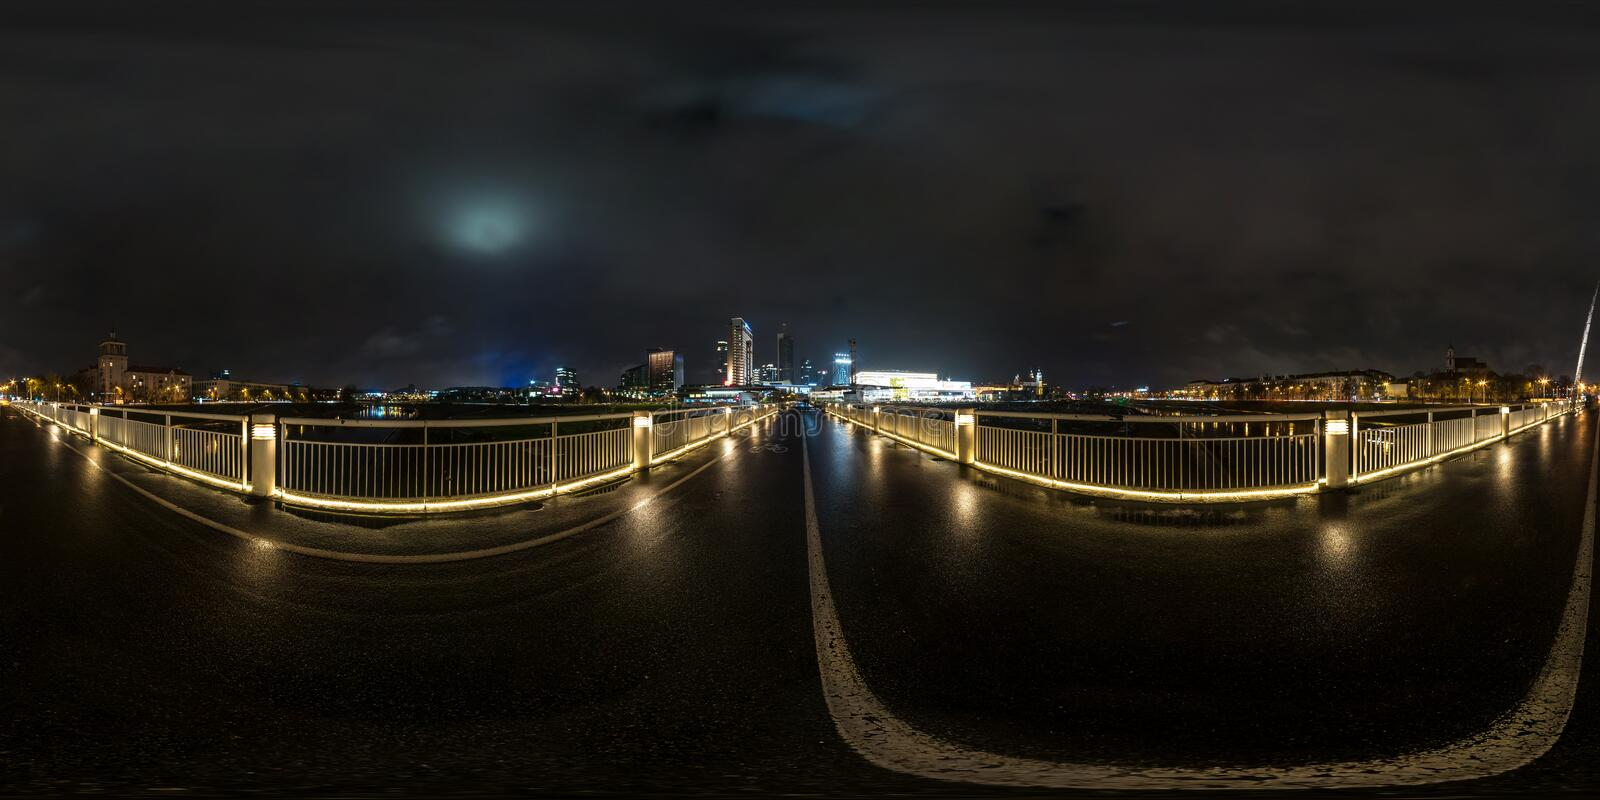 Full seamless spherical night panorama 360 degrees angle view on pedestrian bridge in equirectangular projection, ready for VR AR. Virtual reality stock image